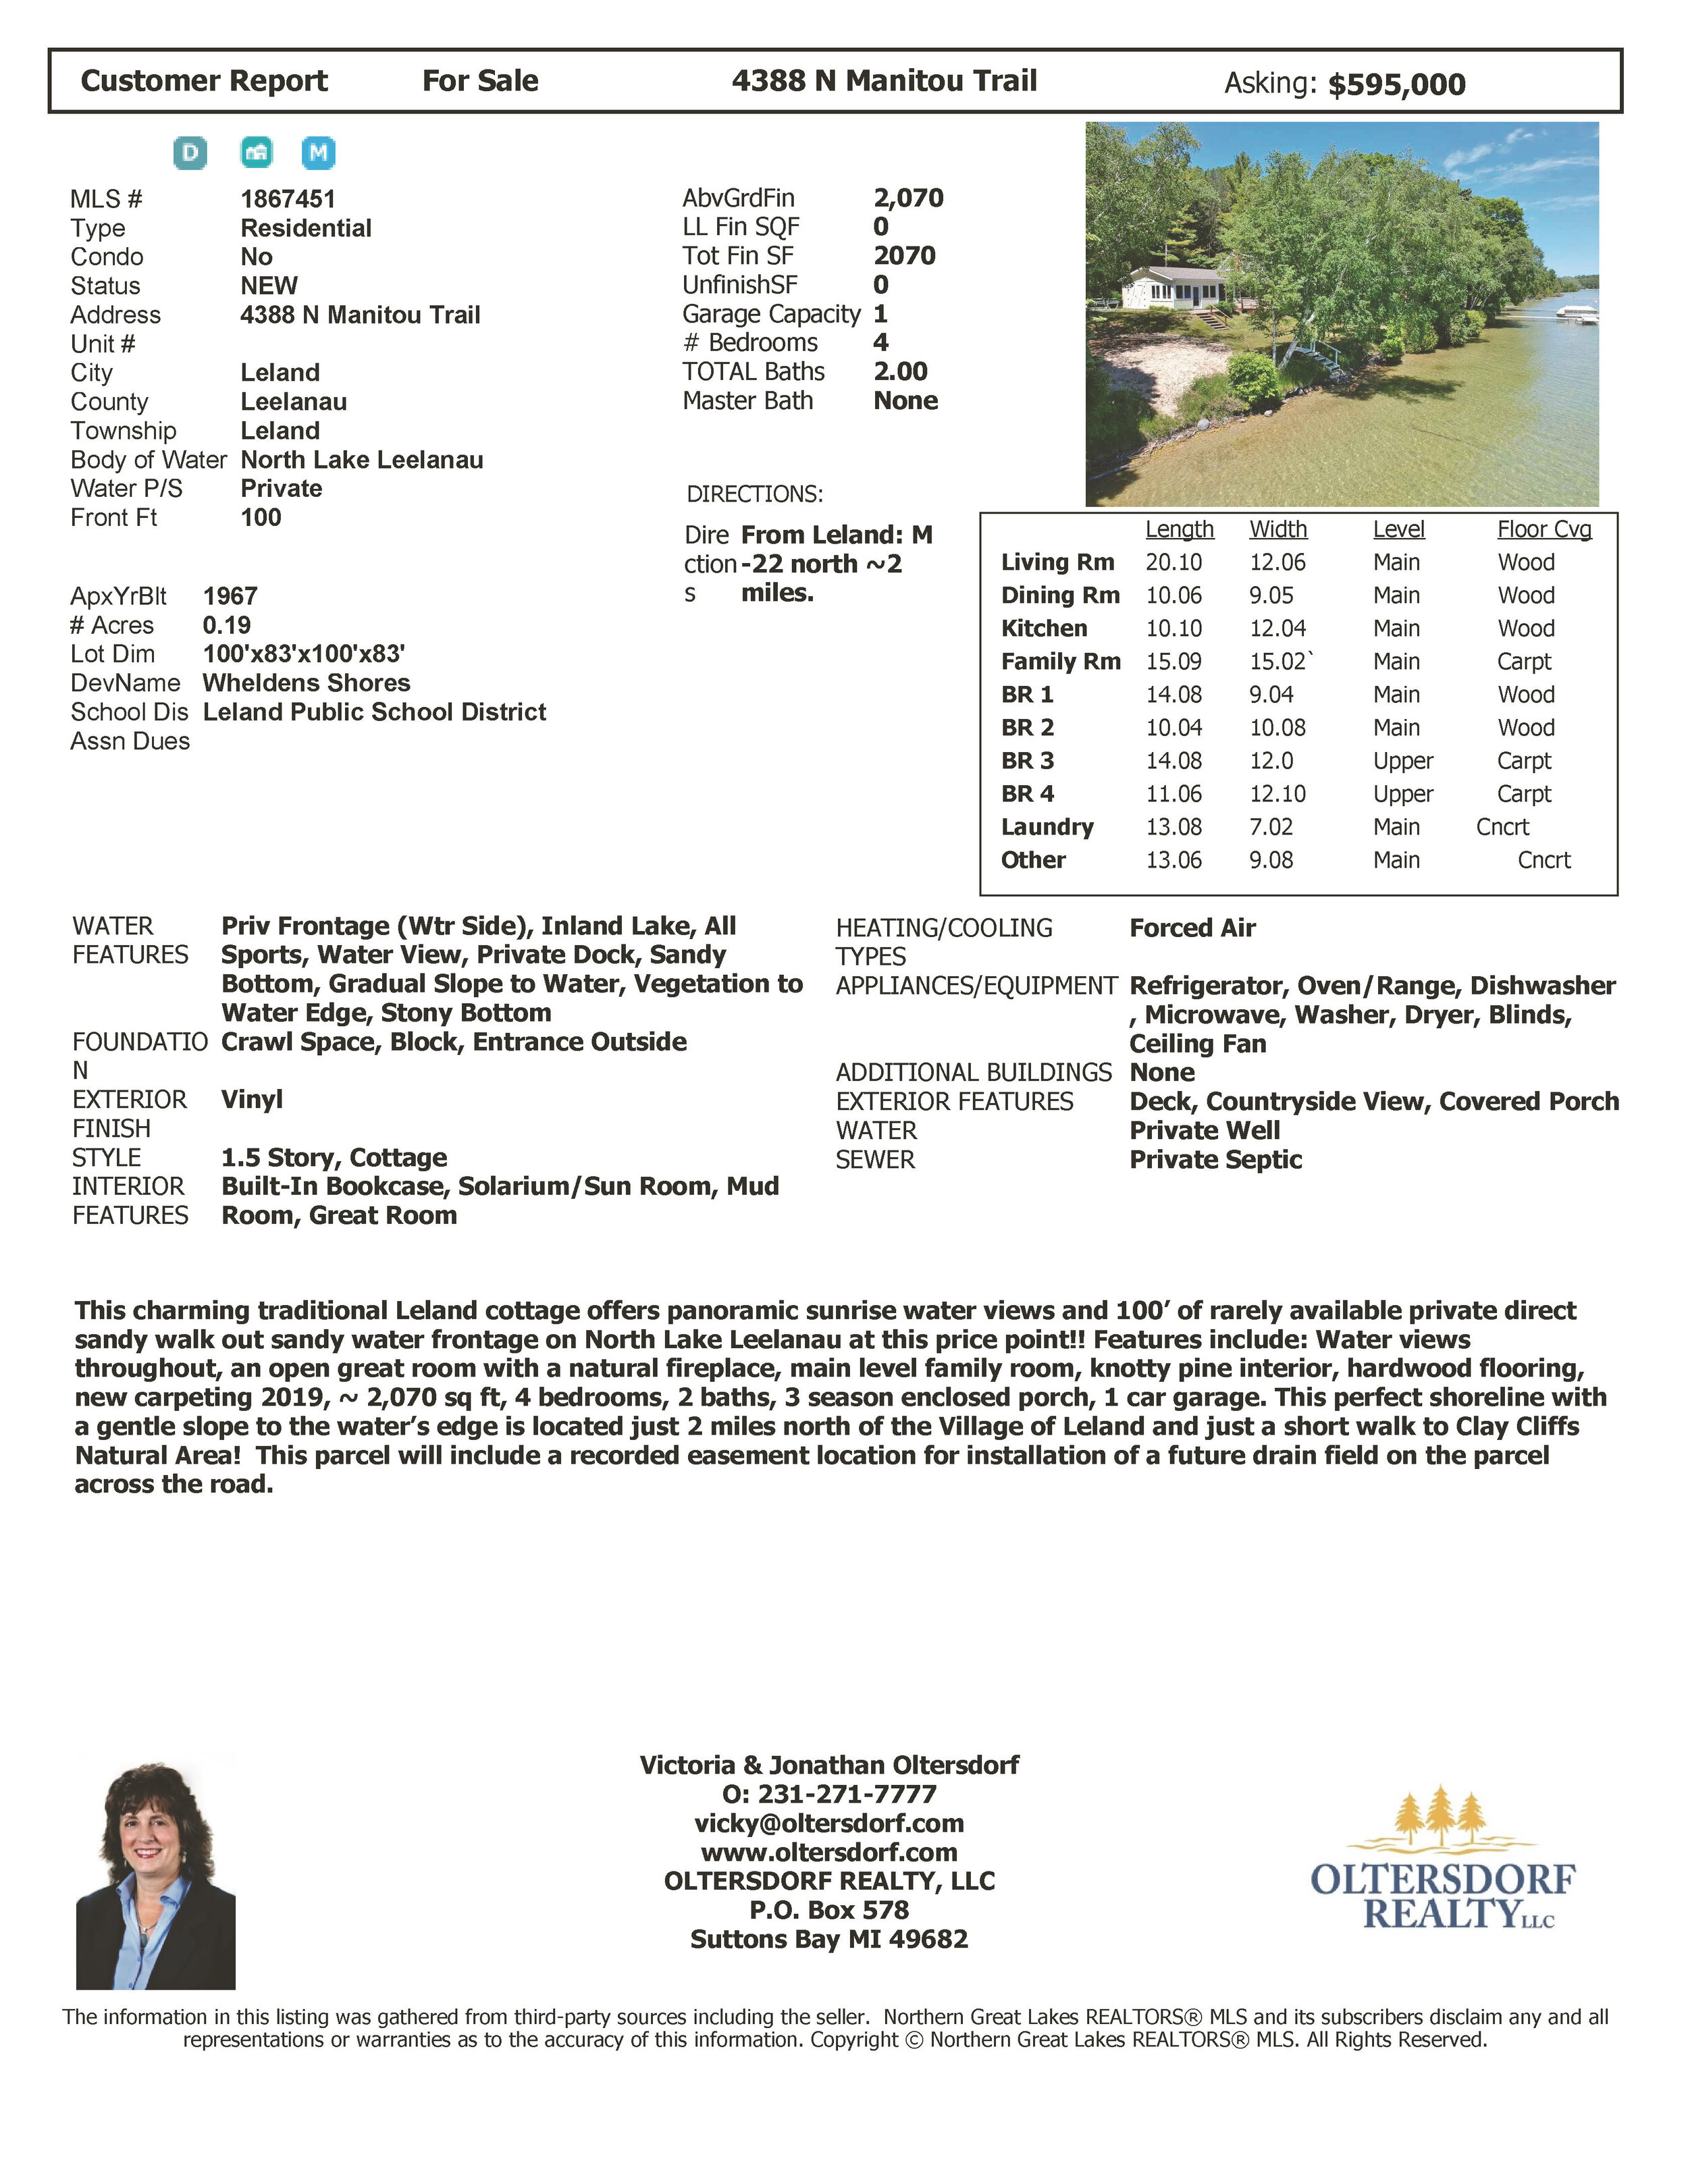 4388 N Manitou Trail, Leland - House Only Marketing Packet_Page_07.jpg